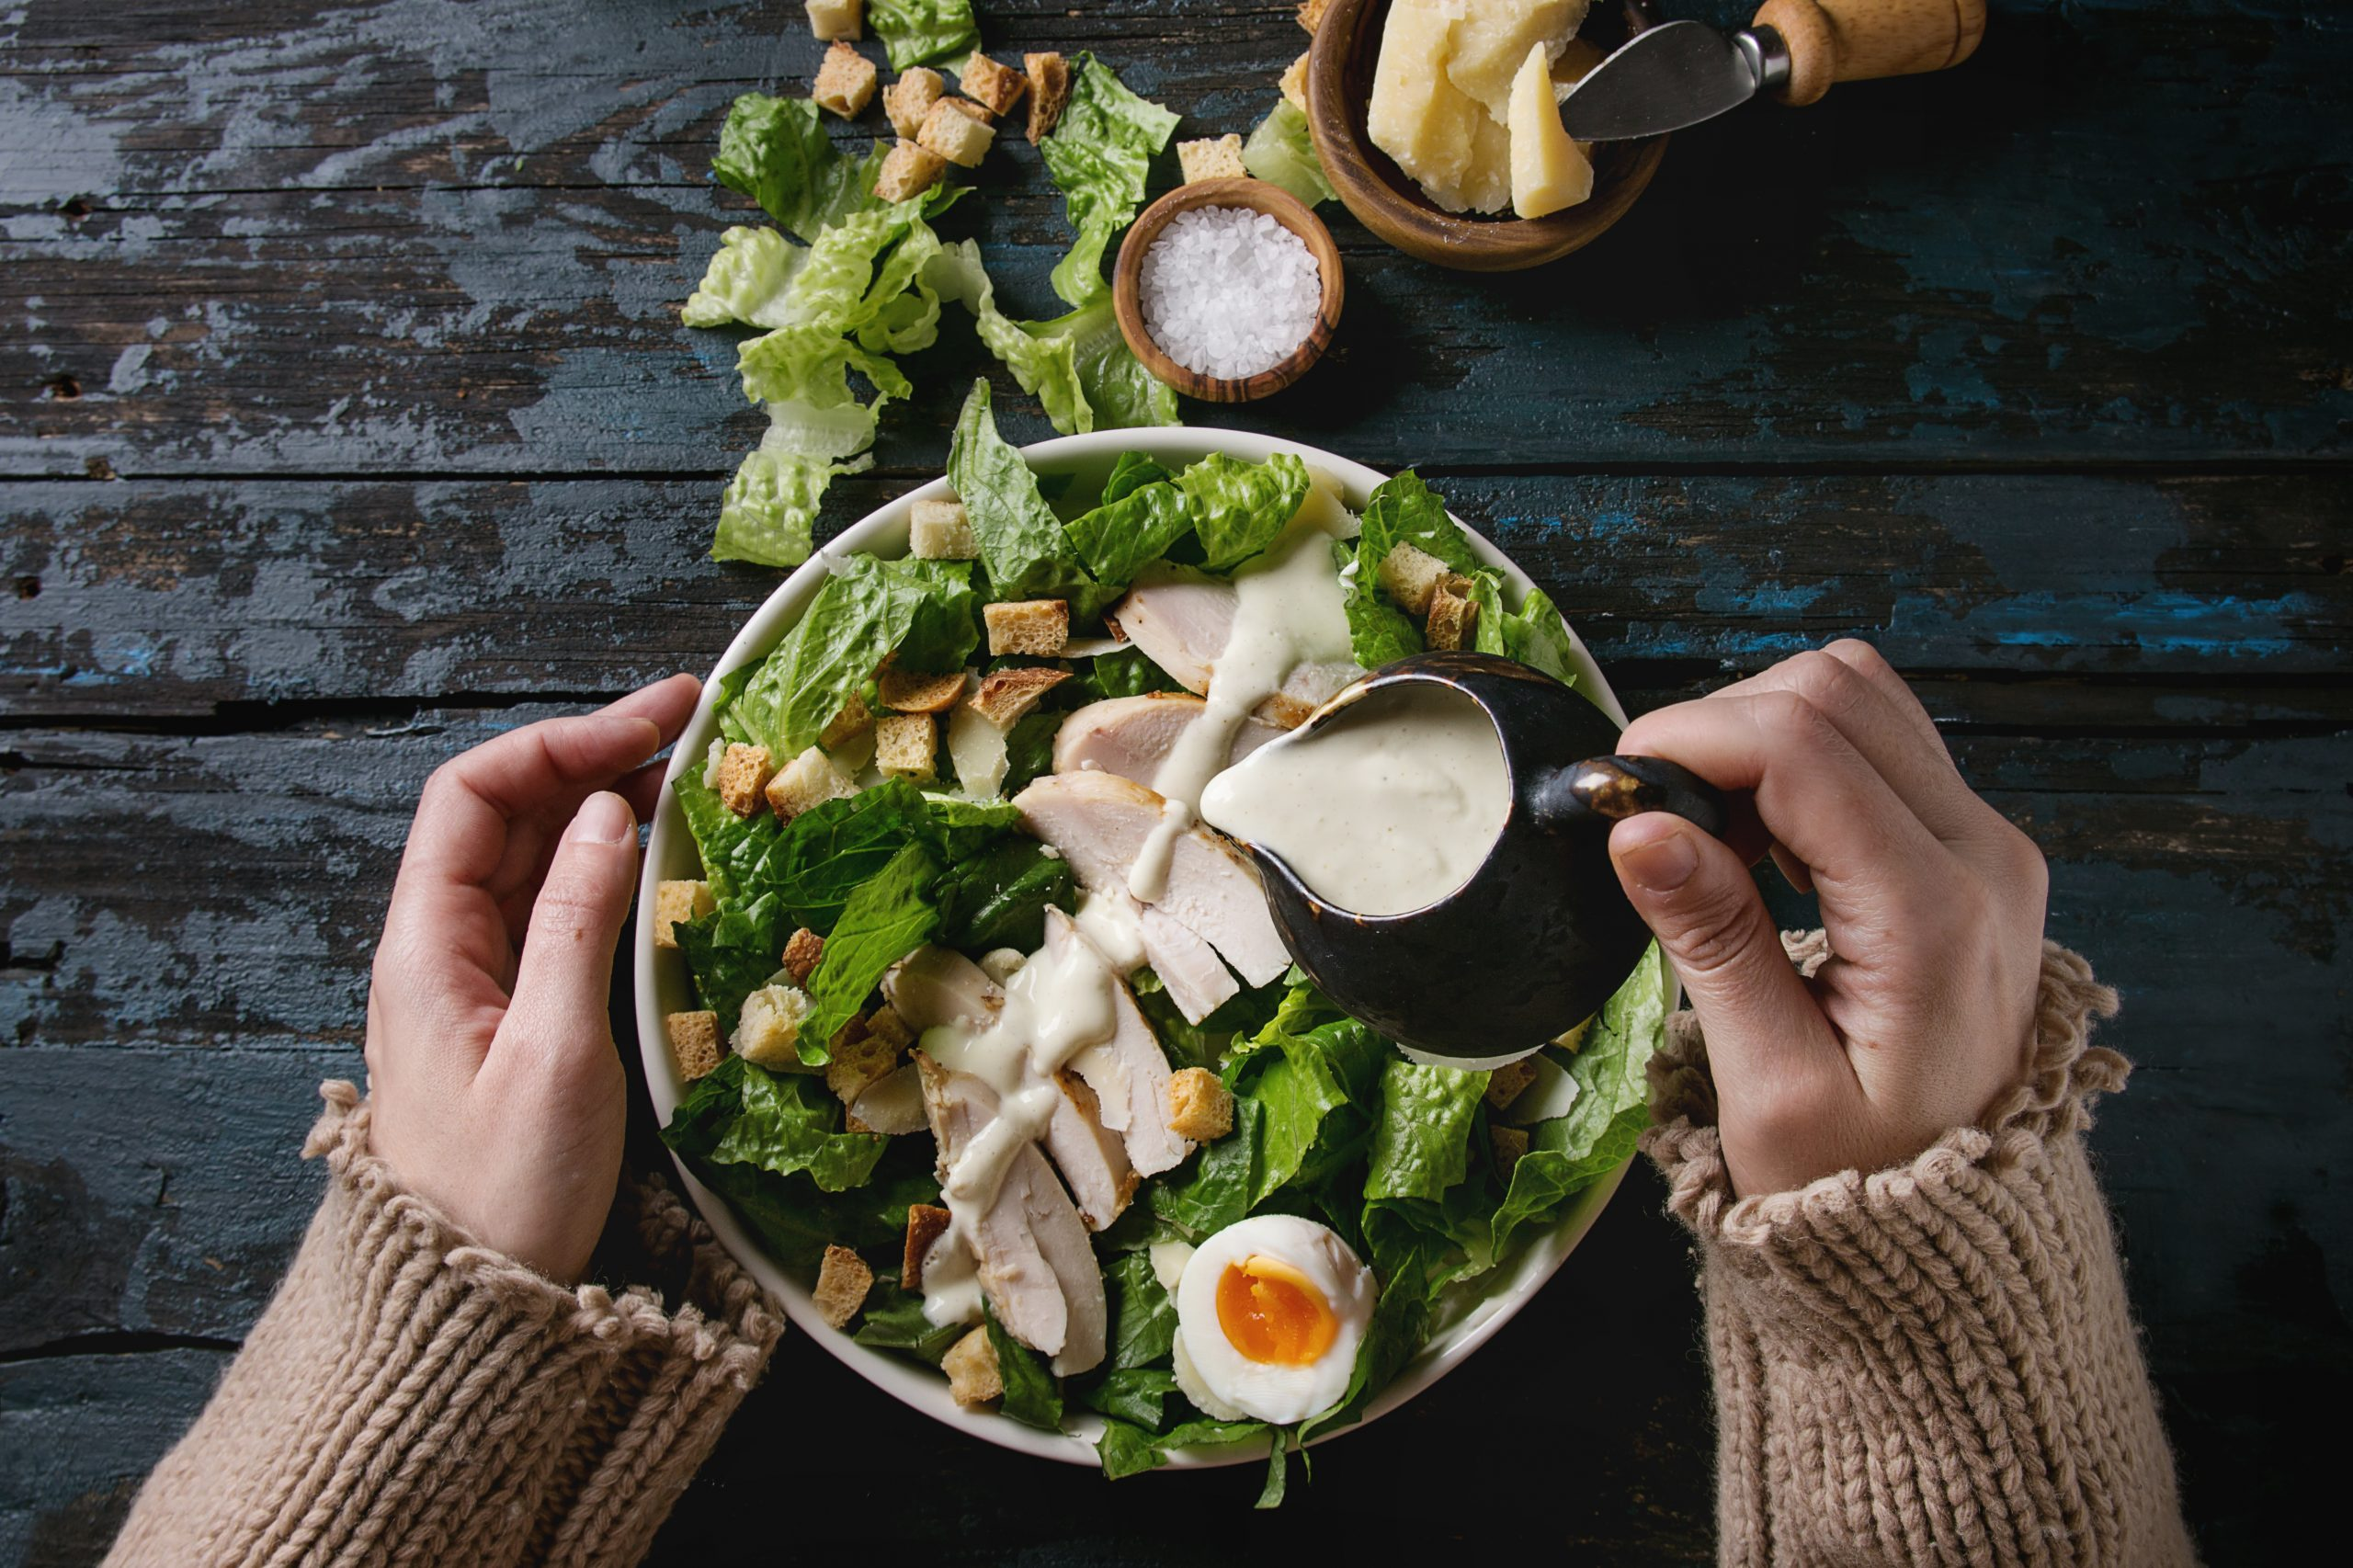 Chicken salad drizzled with our CBD salad dressing.